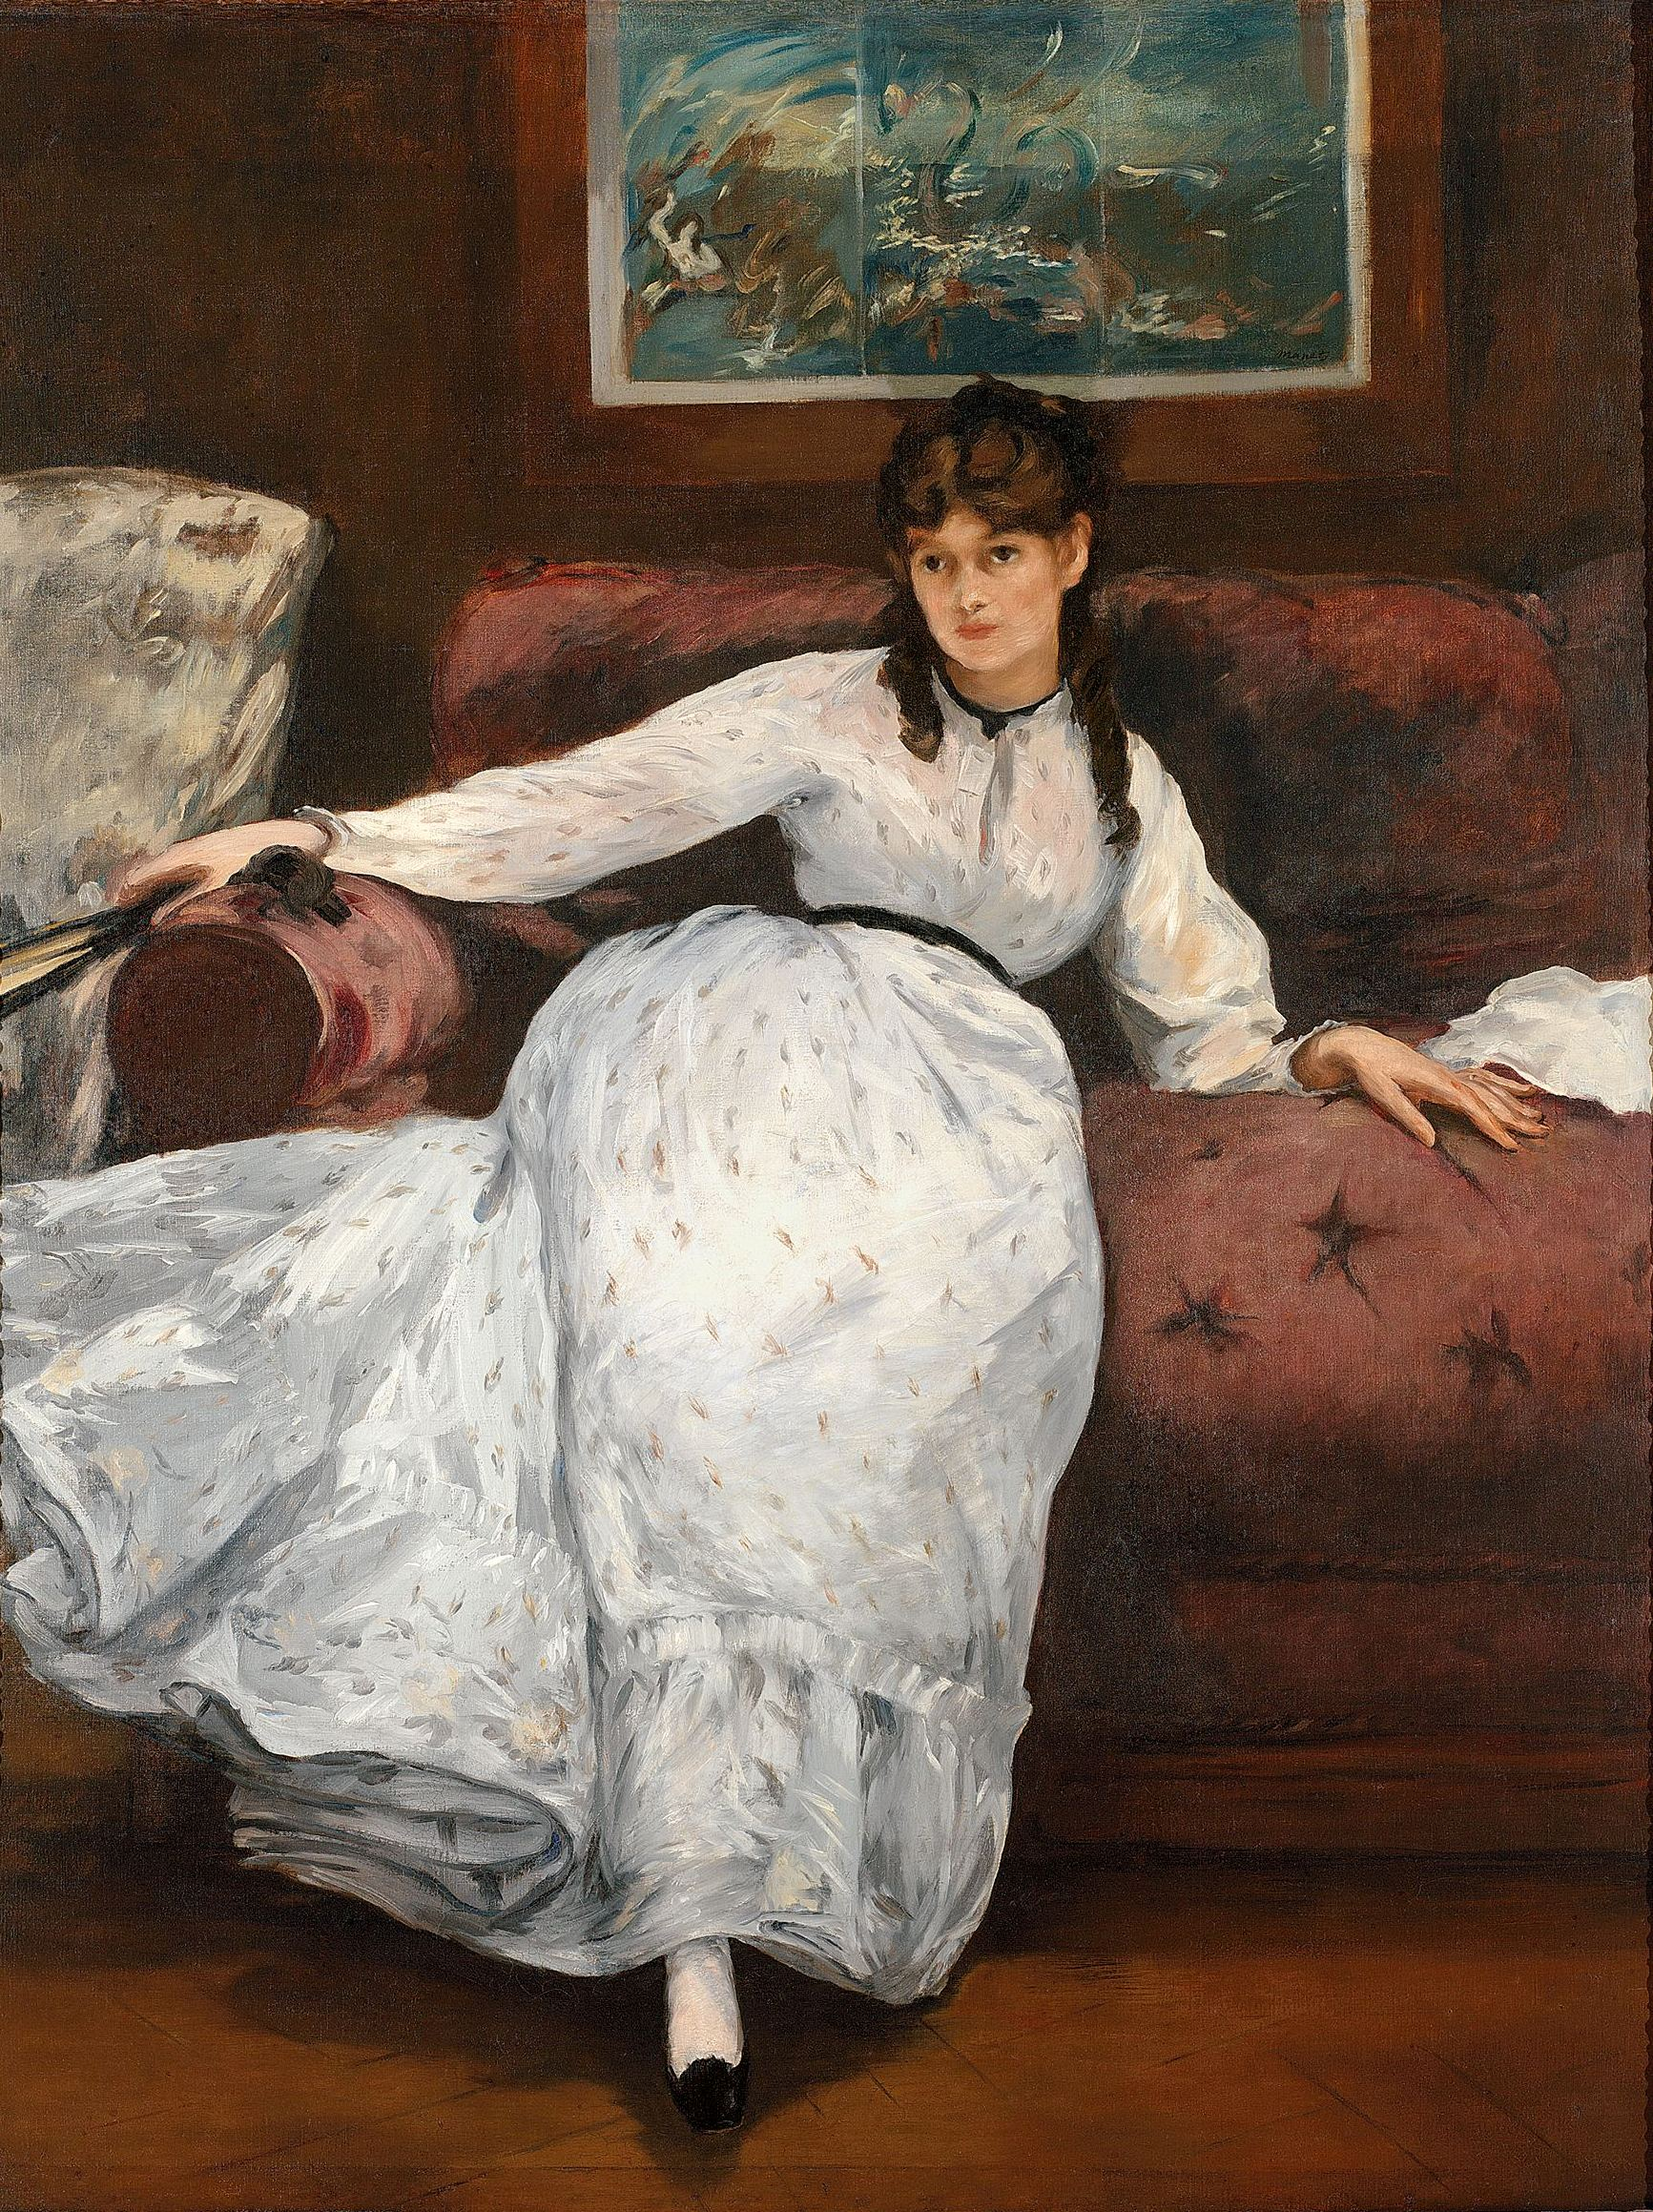 Art history lesson for kids– Explore the art of Impressionist painter Berthe Morisot.